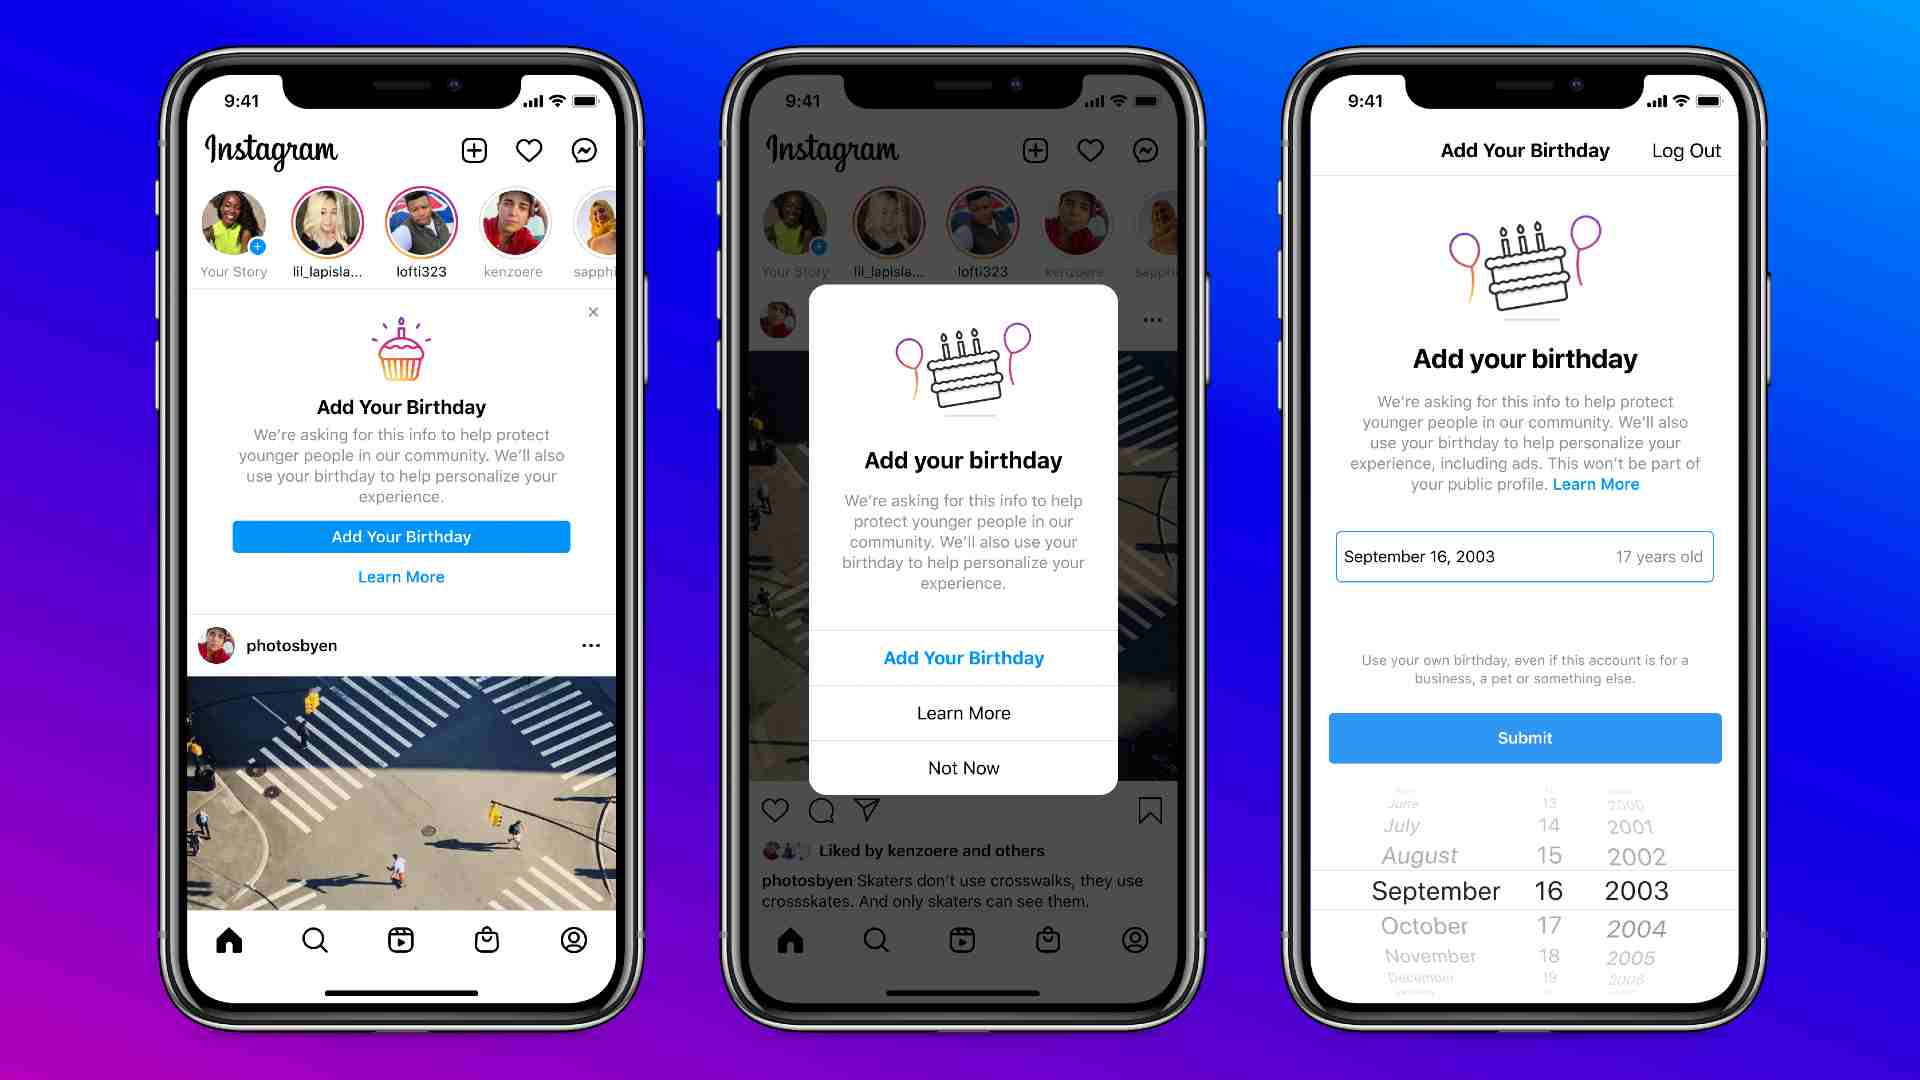 Instagram is understood to be working on an AI-driven function that will prevent users from providing incorrect birthday details. Image: Instagram